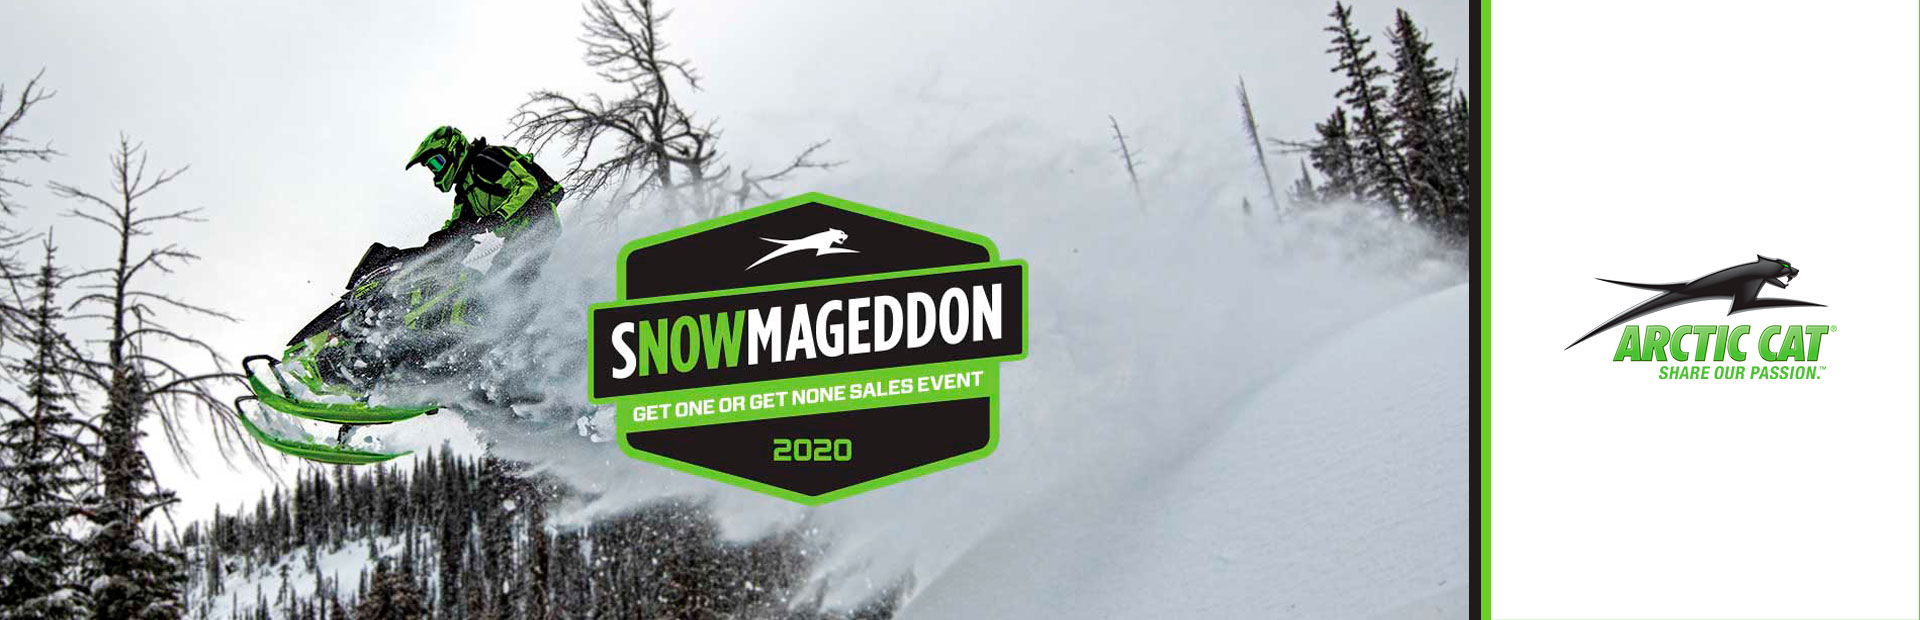 Snowmageddon Get One or Get None Sales Event